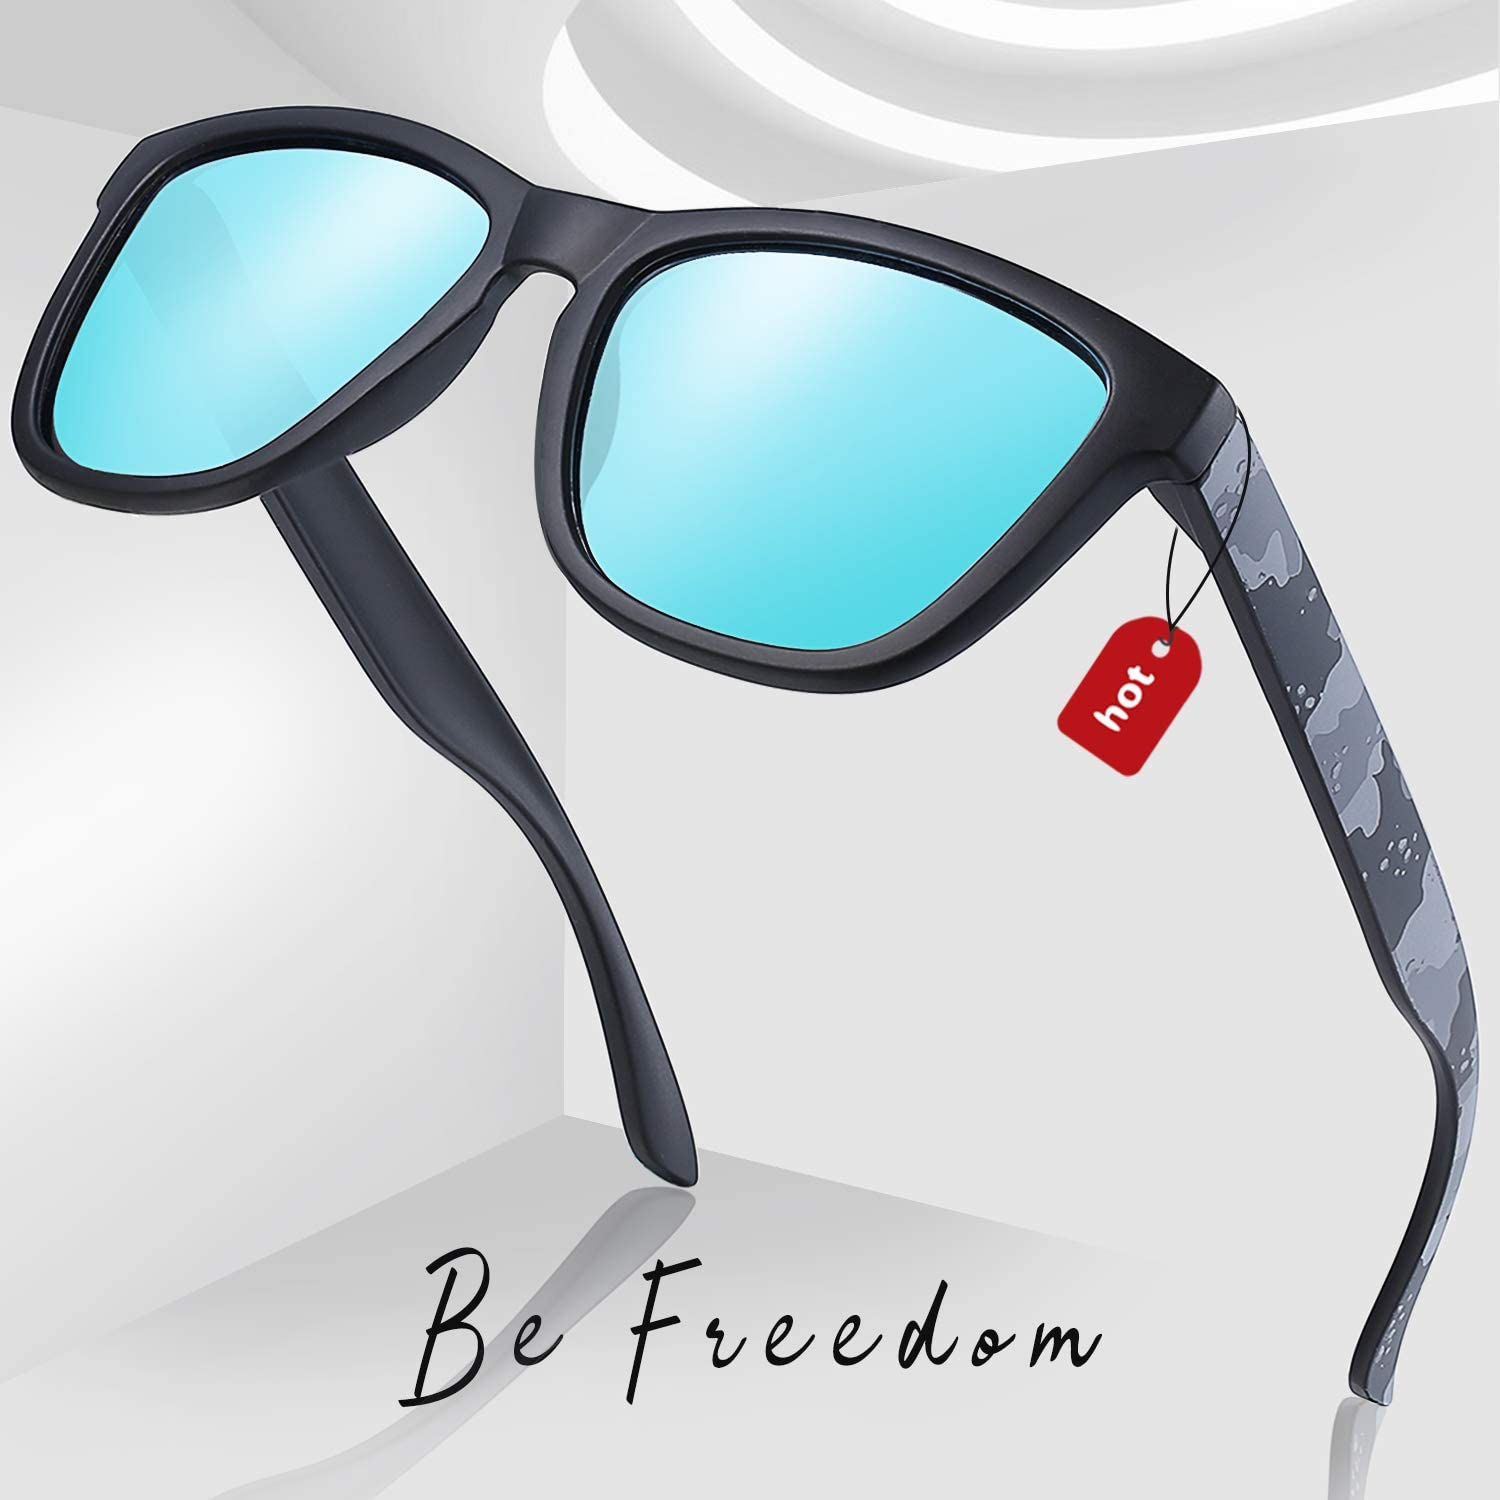 Joopin Square Polarized Sunglasses for Men Women Oversized Retro Thick Frame Low Bridge Mens Womens Sunglasses UV Protection